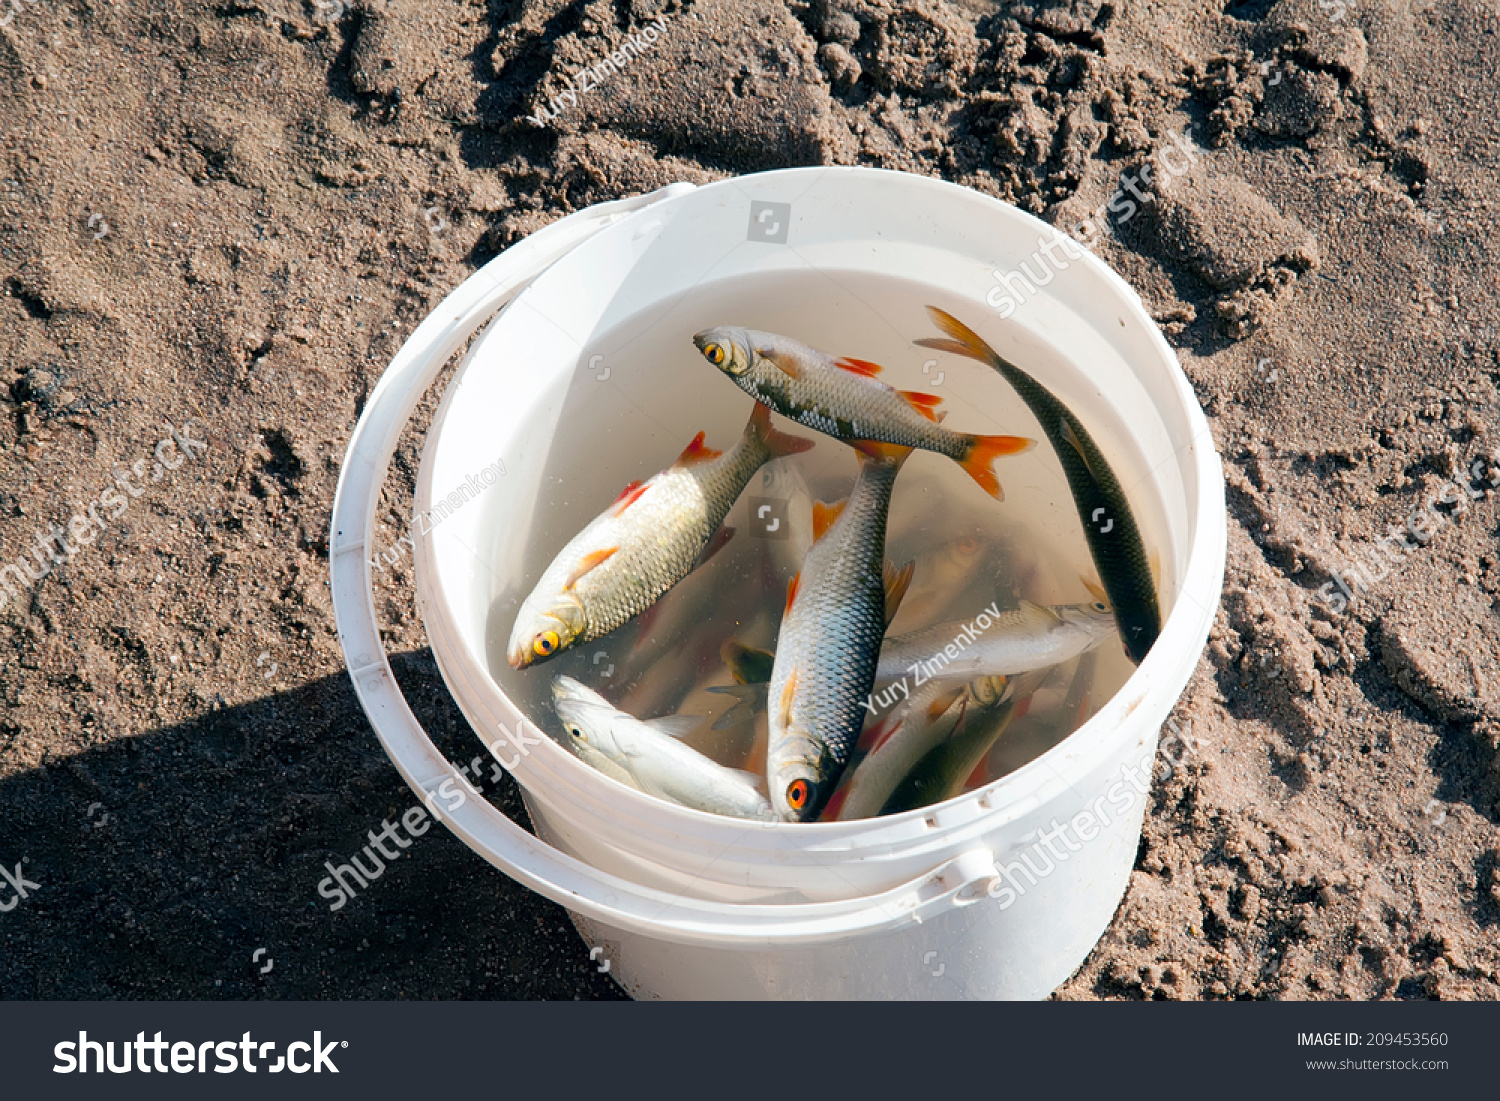 Caught fish is in a white plastic bucket stock photo for Bucket of fish